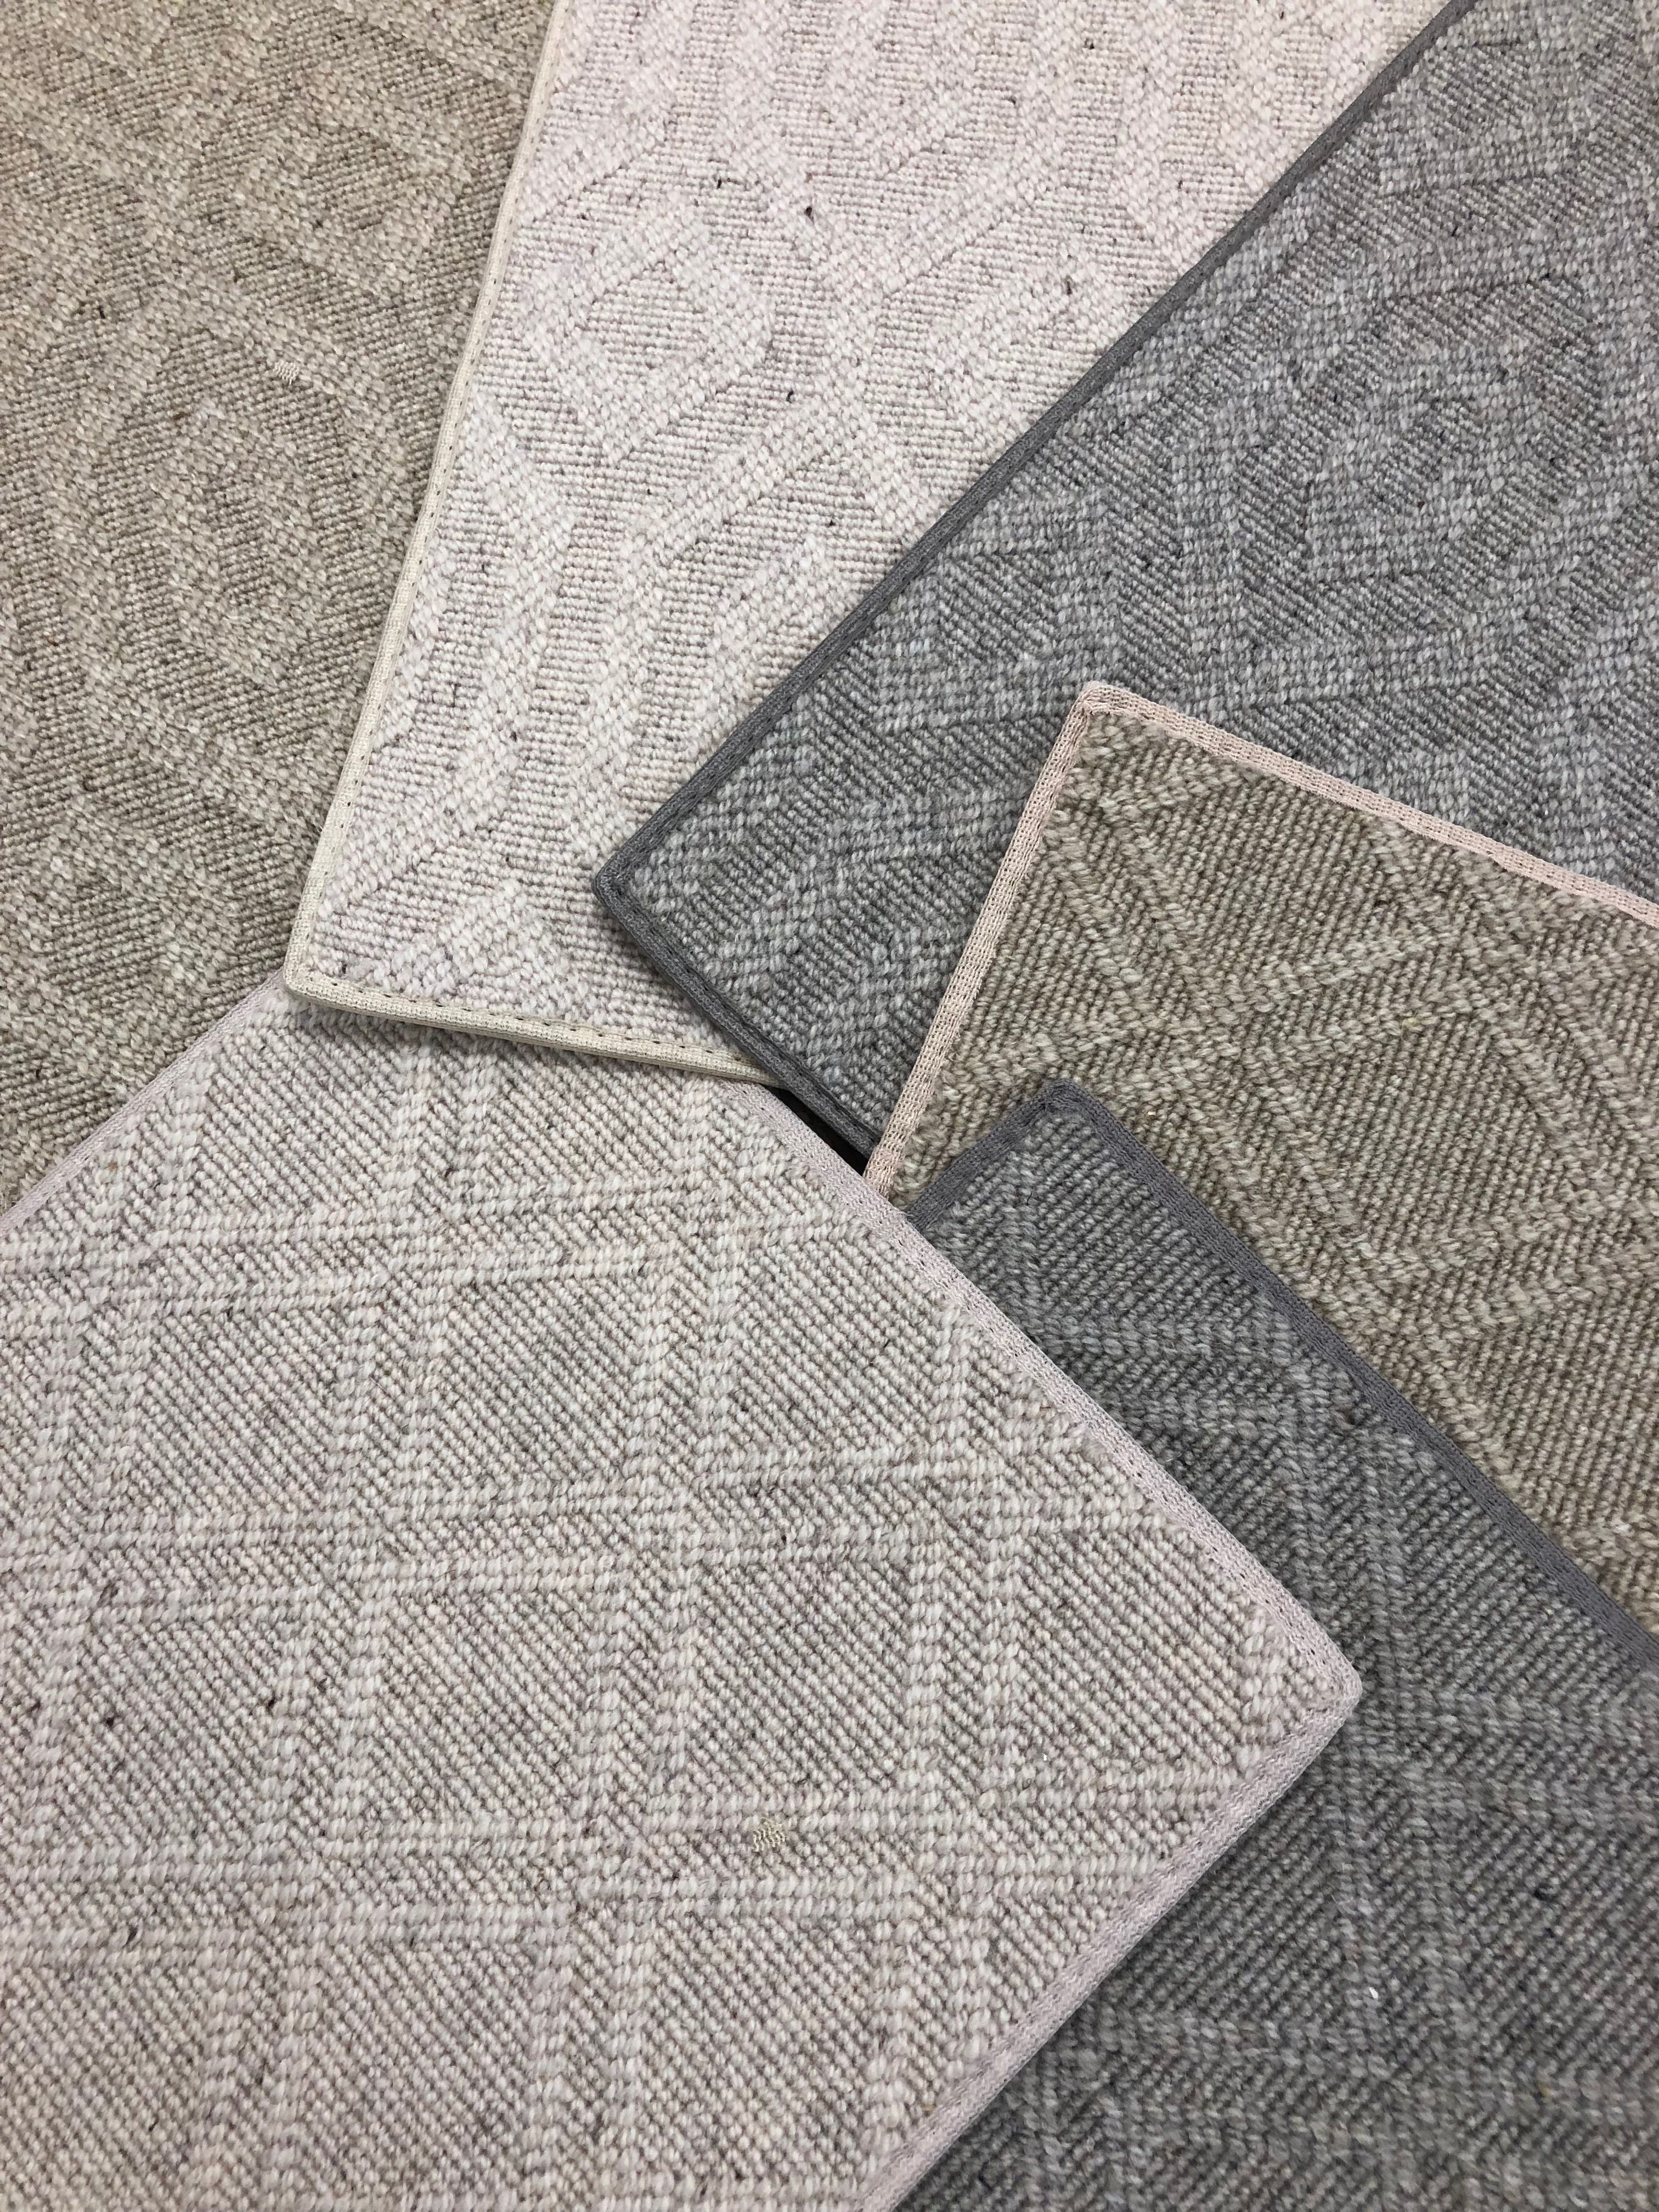 New Arrivals This Wool Patterned Carpet Can Be Installed